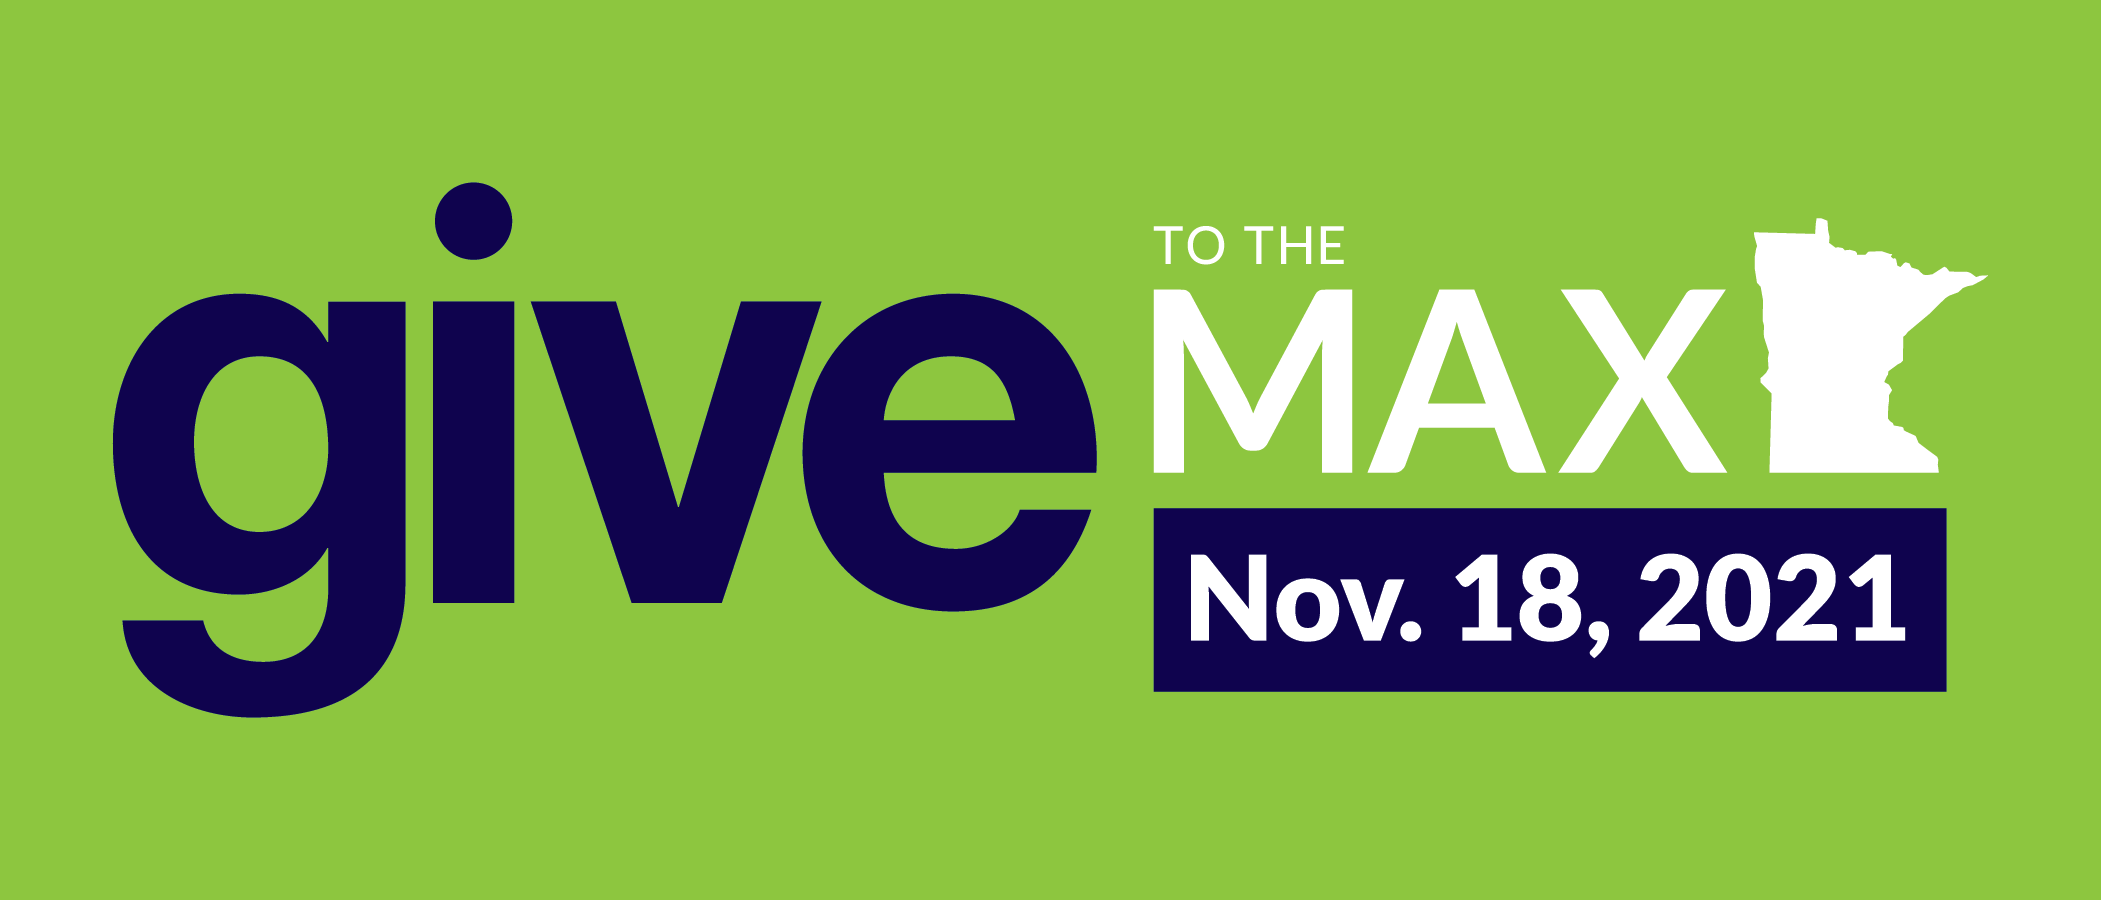 SAVE THE DATE: GIVE MN 2021 is November 18th!